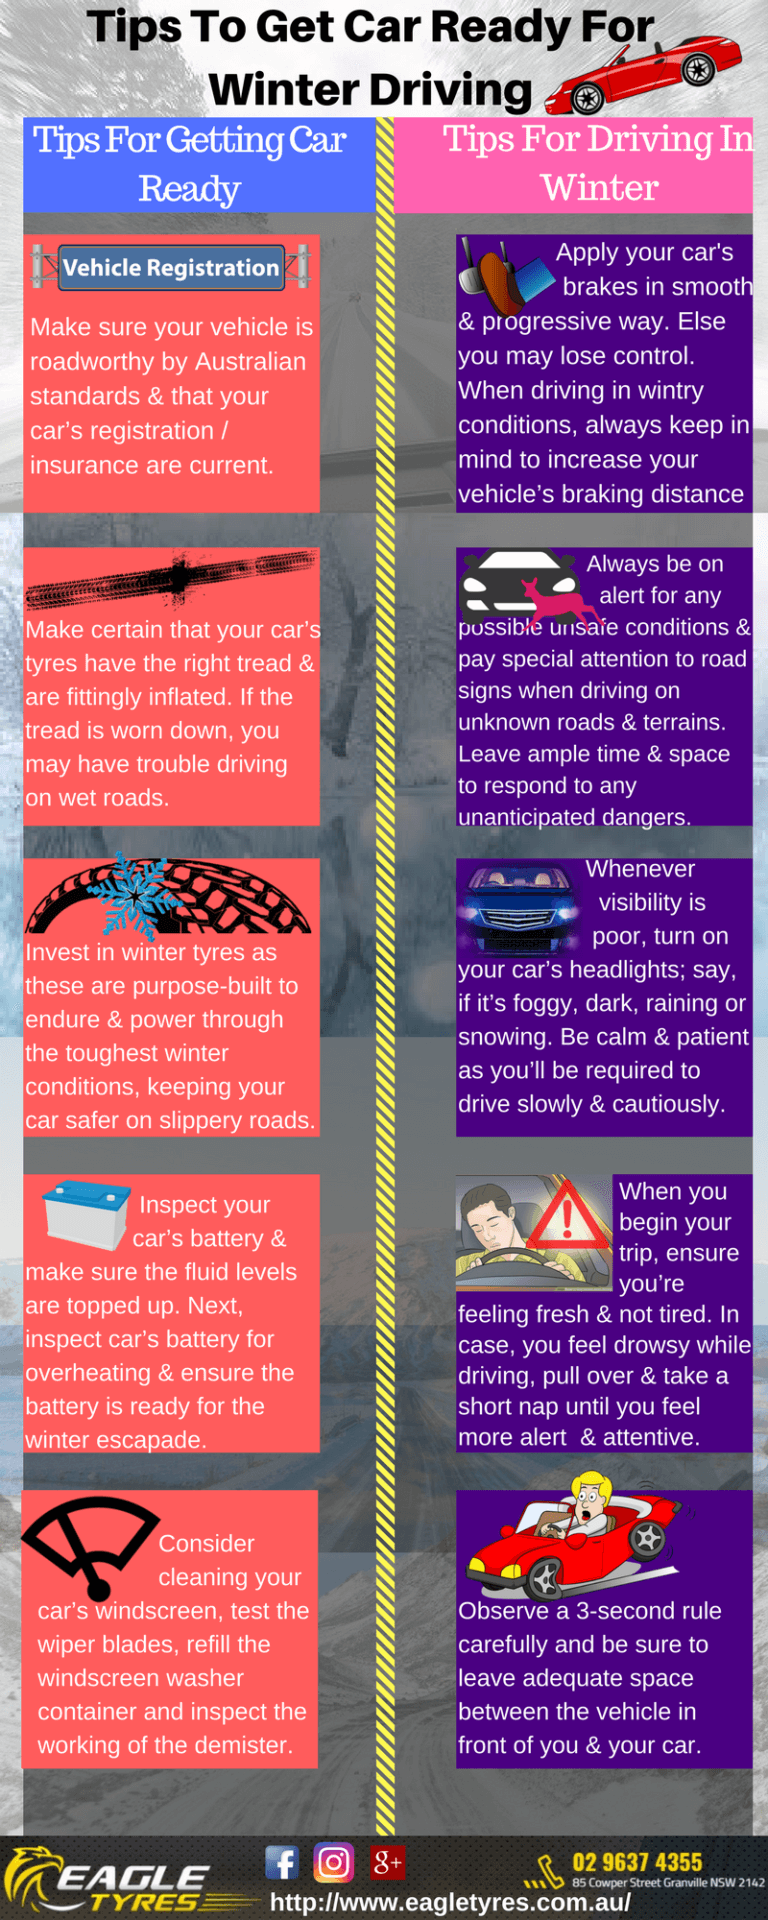 Tips-To-Get-Car-Ready-For-Winter-Driving